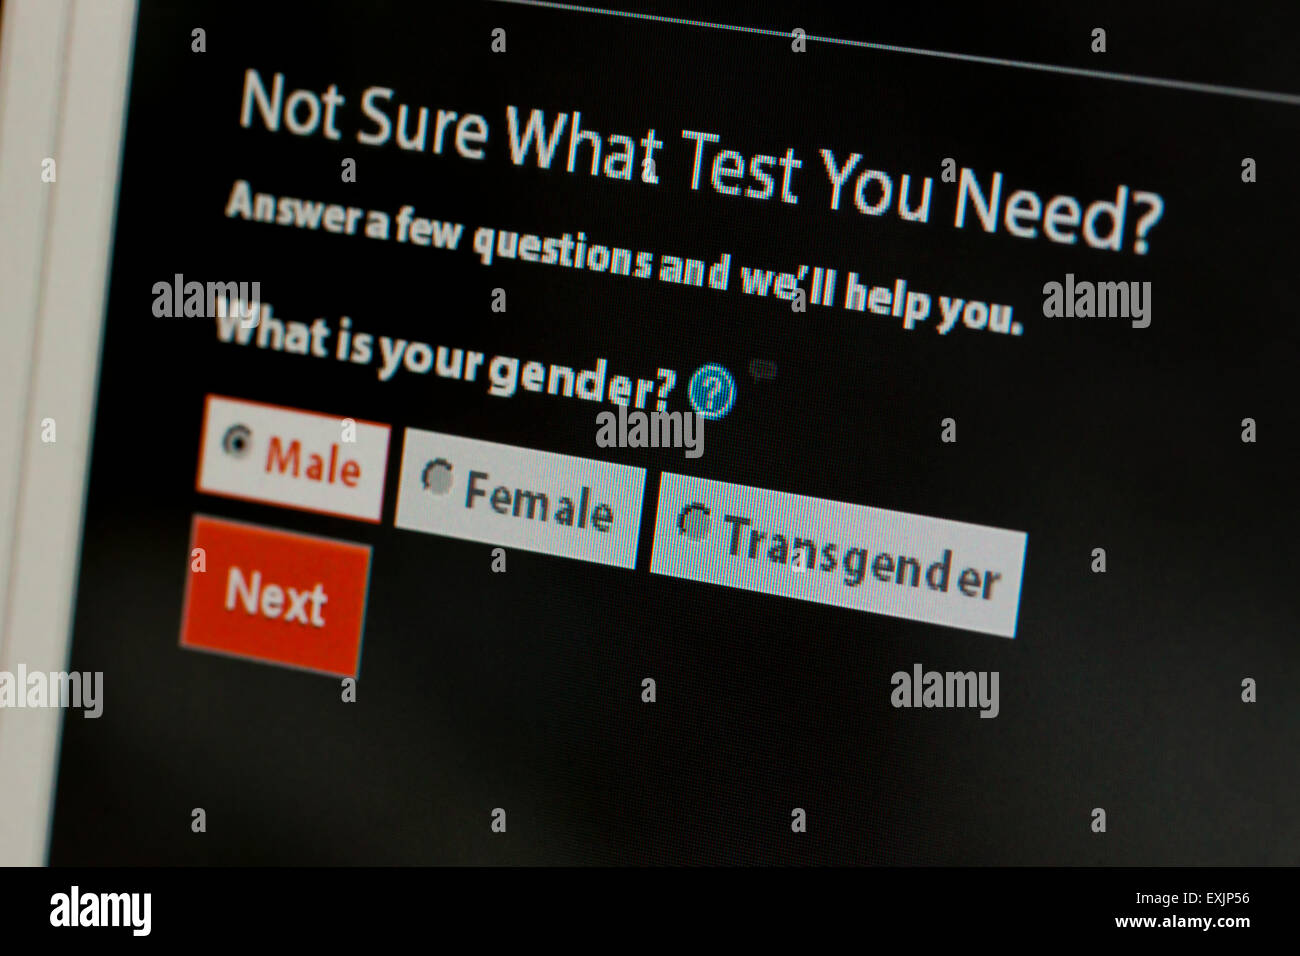 Gender selection of male, female, and transgender, on HIV / STD testing information on Centers for Disease Control - Stock Image